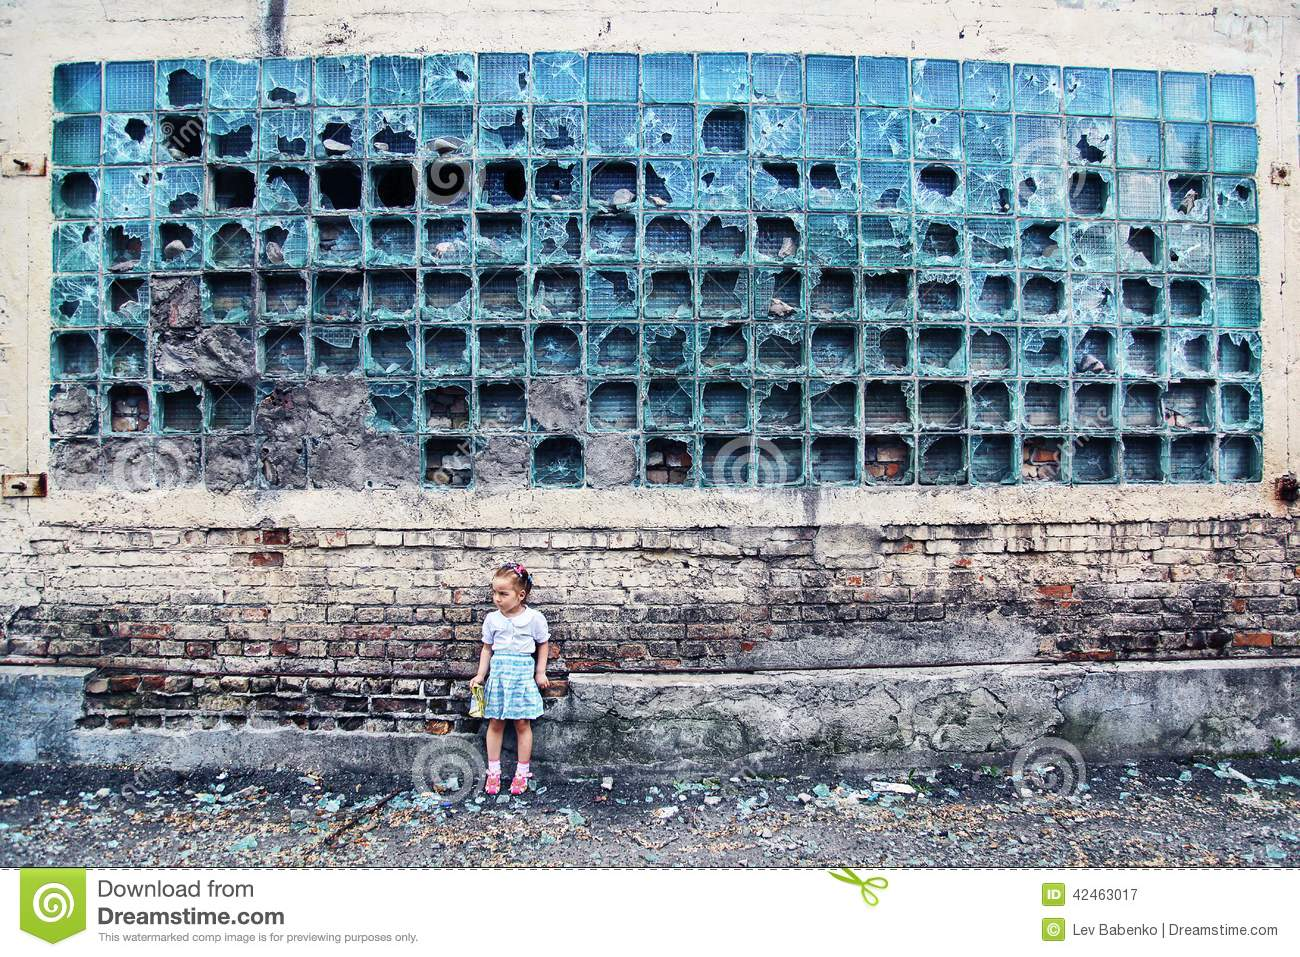 Crumbling wall. broken glass, little defenseless girl